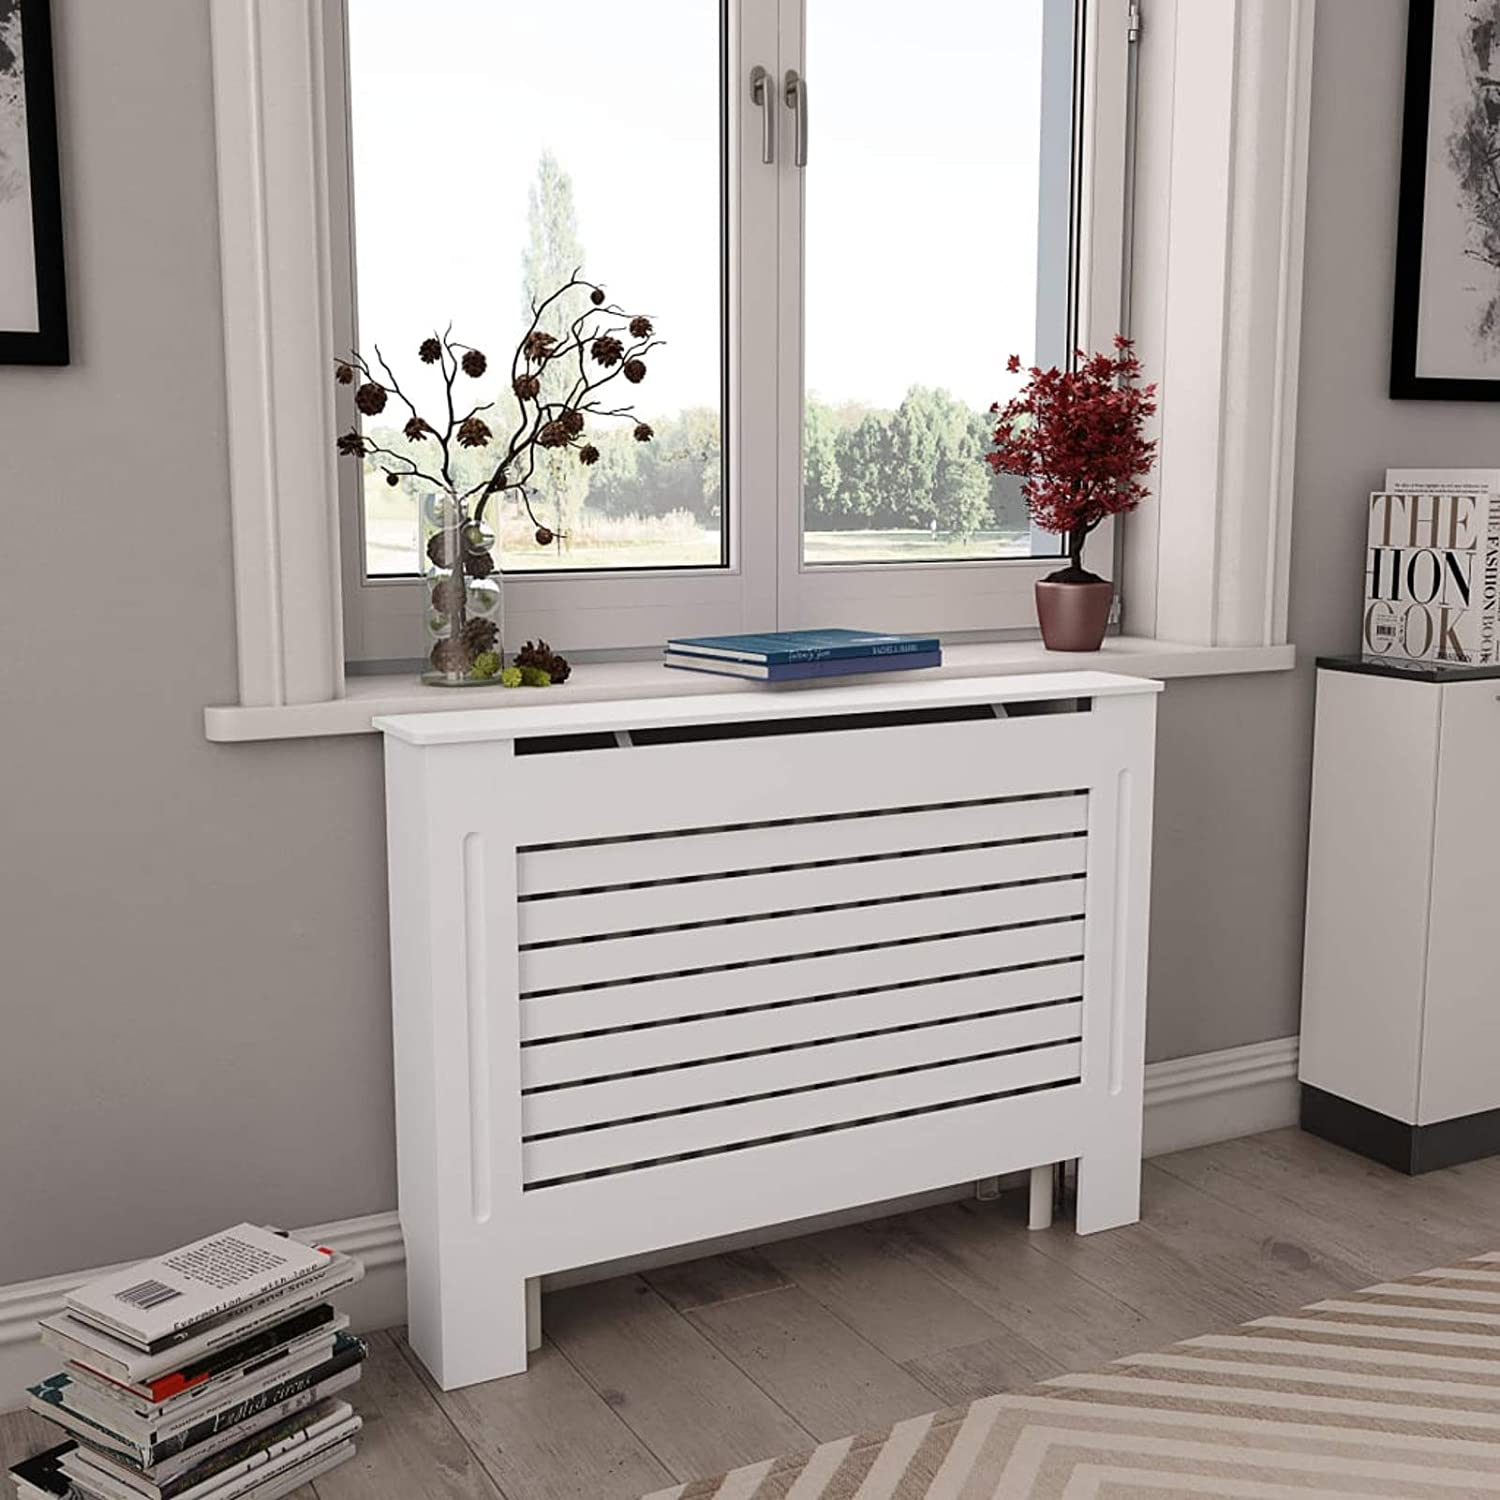 Festnight Radiator Cover MDF with Matt Finished Slatted Design Heating Cabinet Smooth Top for Living Room Bedroom Furniture Decor 44.1 x 7.5 x 32.1 Inches (W x D x H)